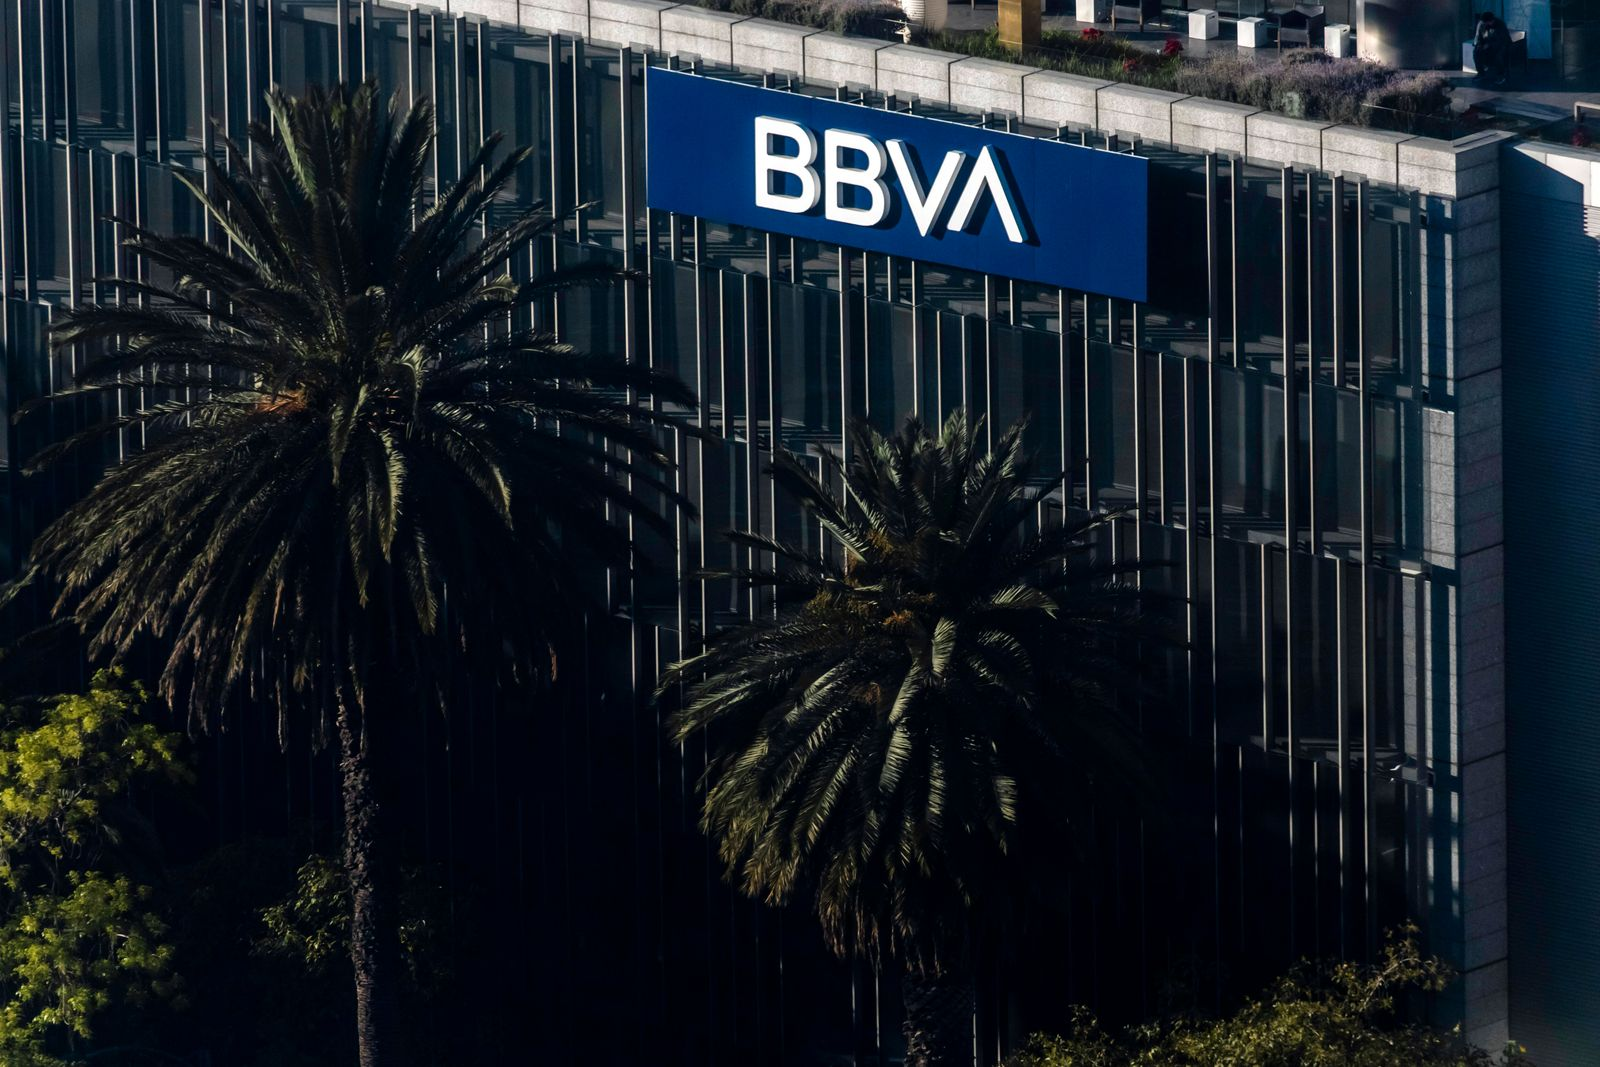 Mexico City, Mexico December 15, 2020 - View of the Mexican capital from a rooftop in the Reforma district - The BBVA ba